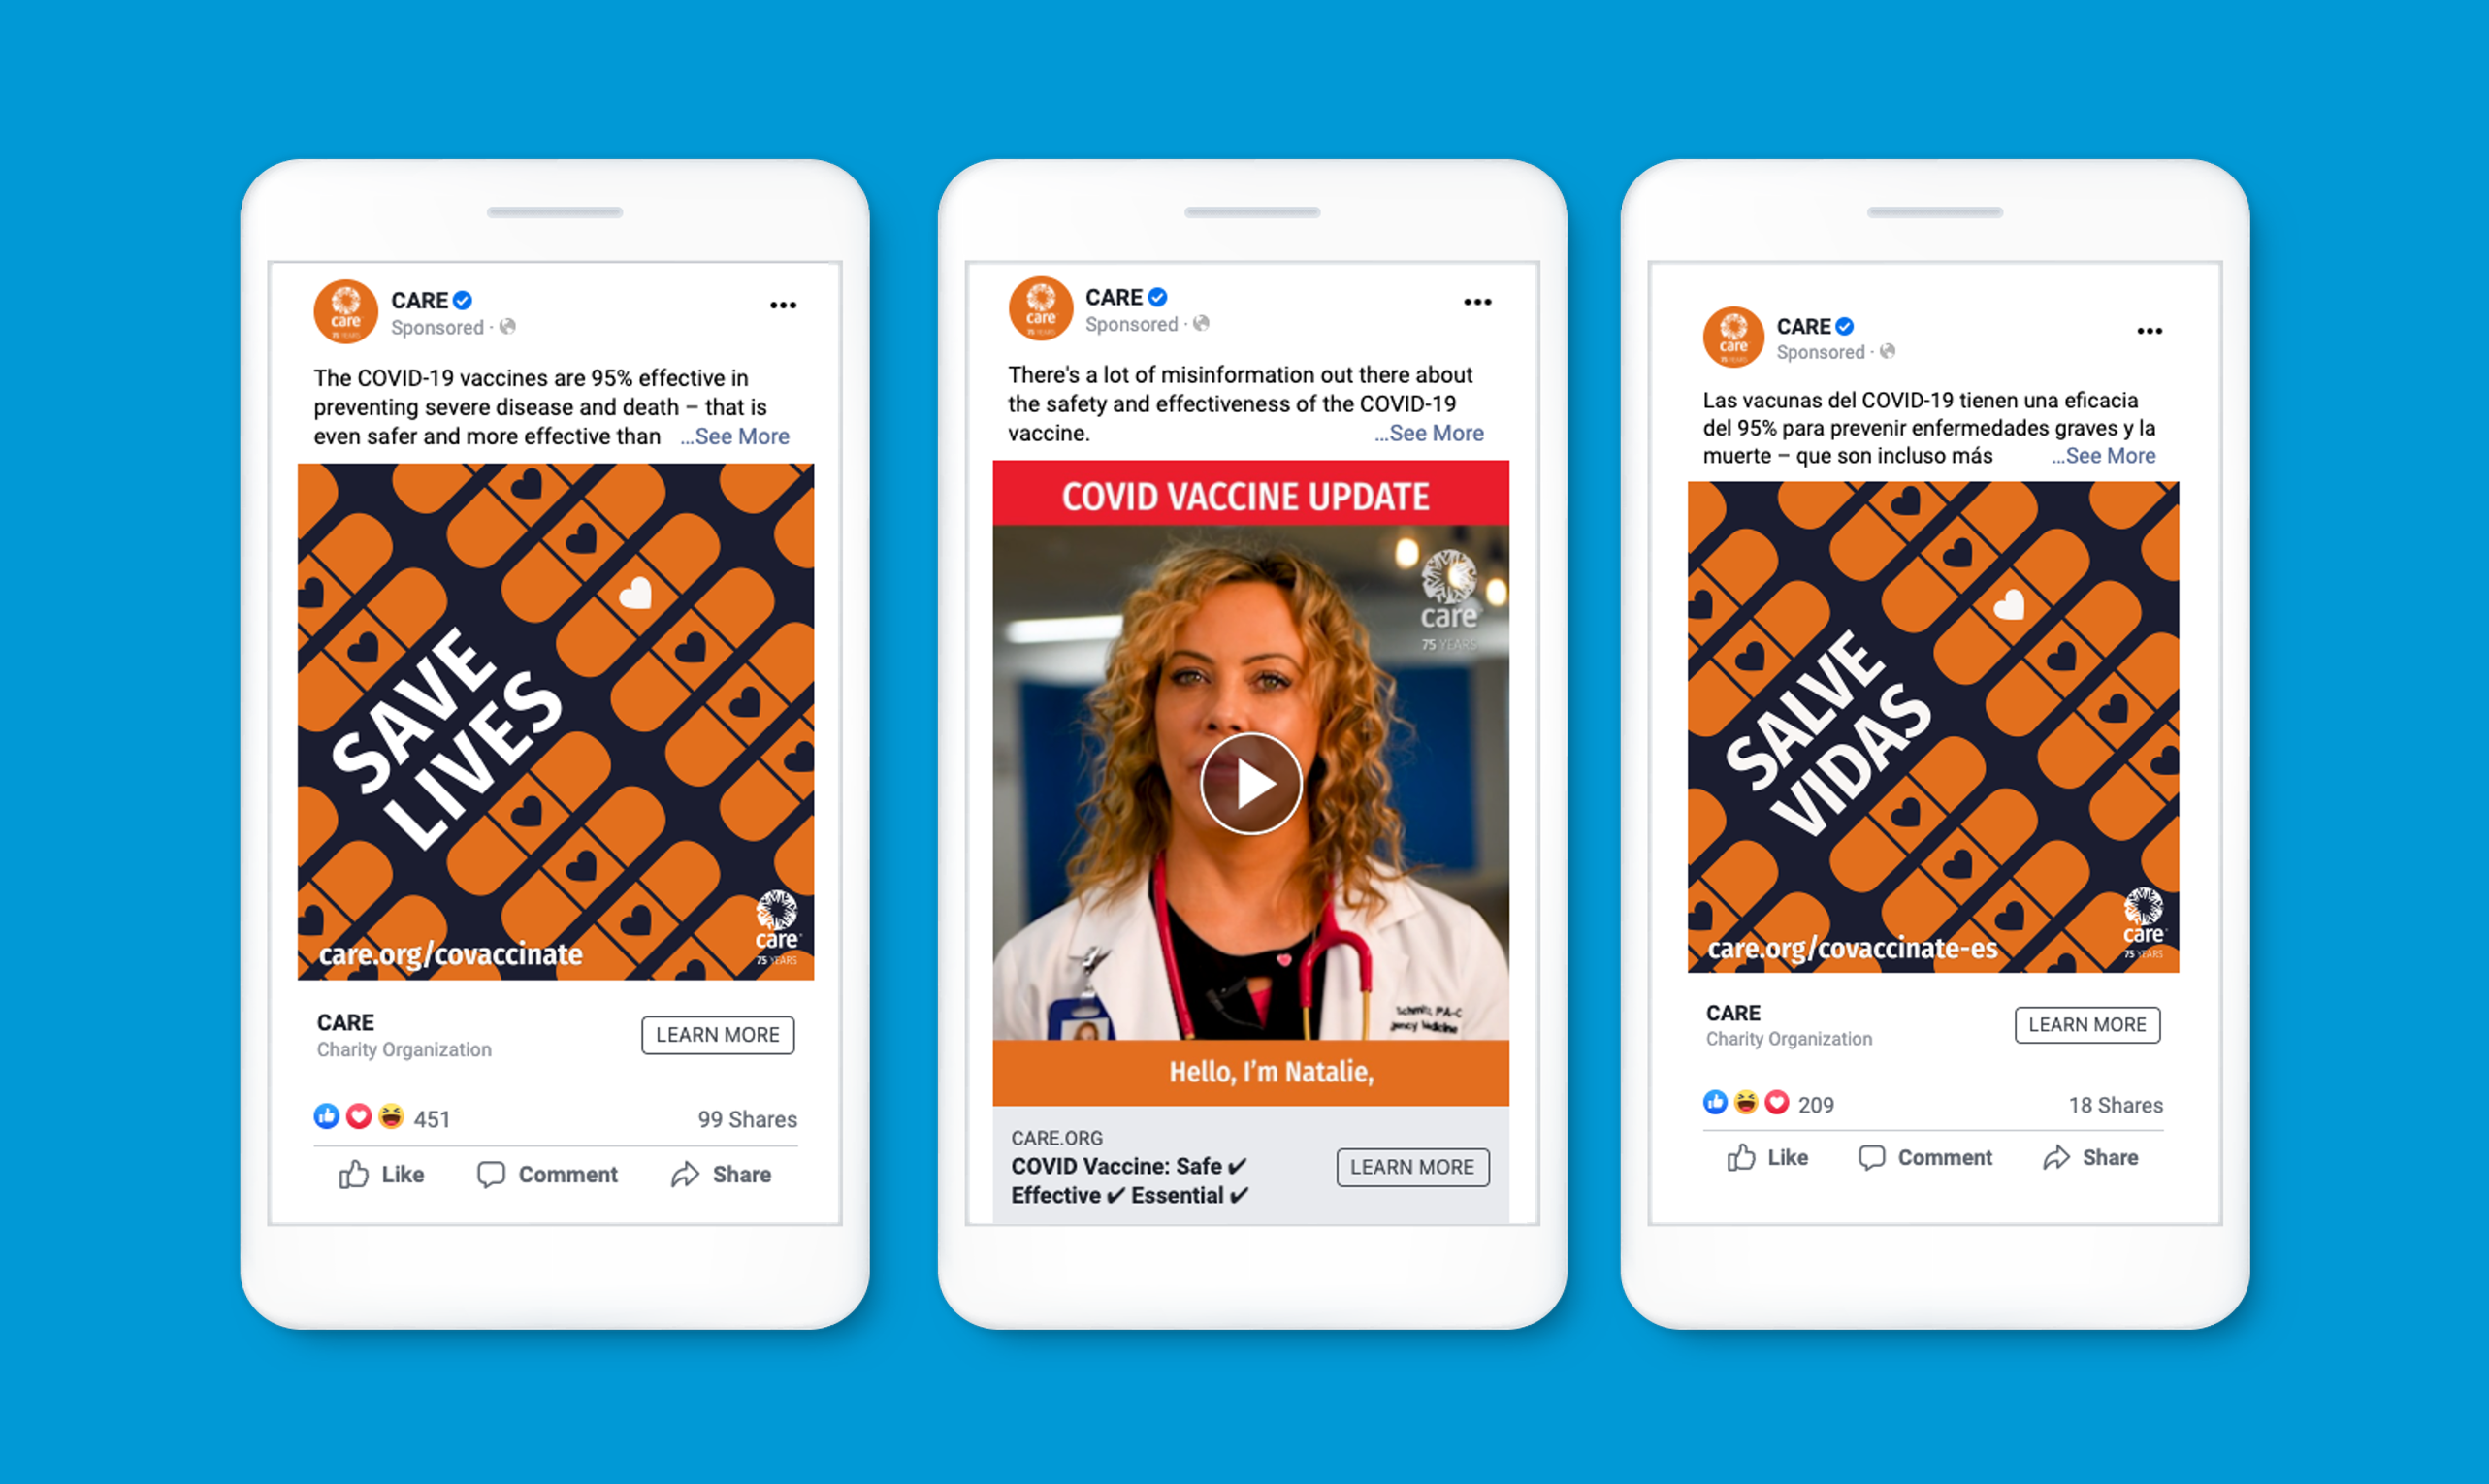 Three mockups of sample Facebook image and video posts on iPhones on a bright blue background.